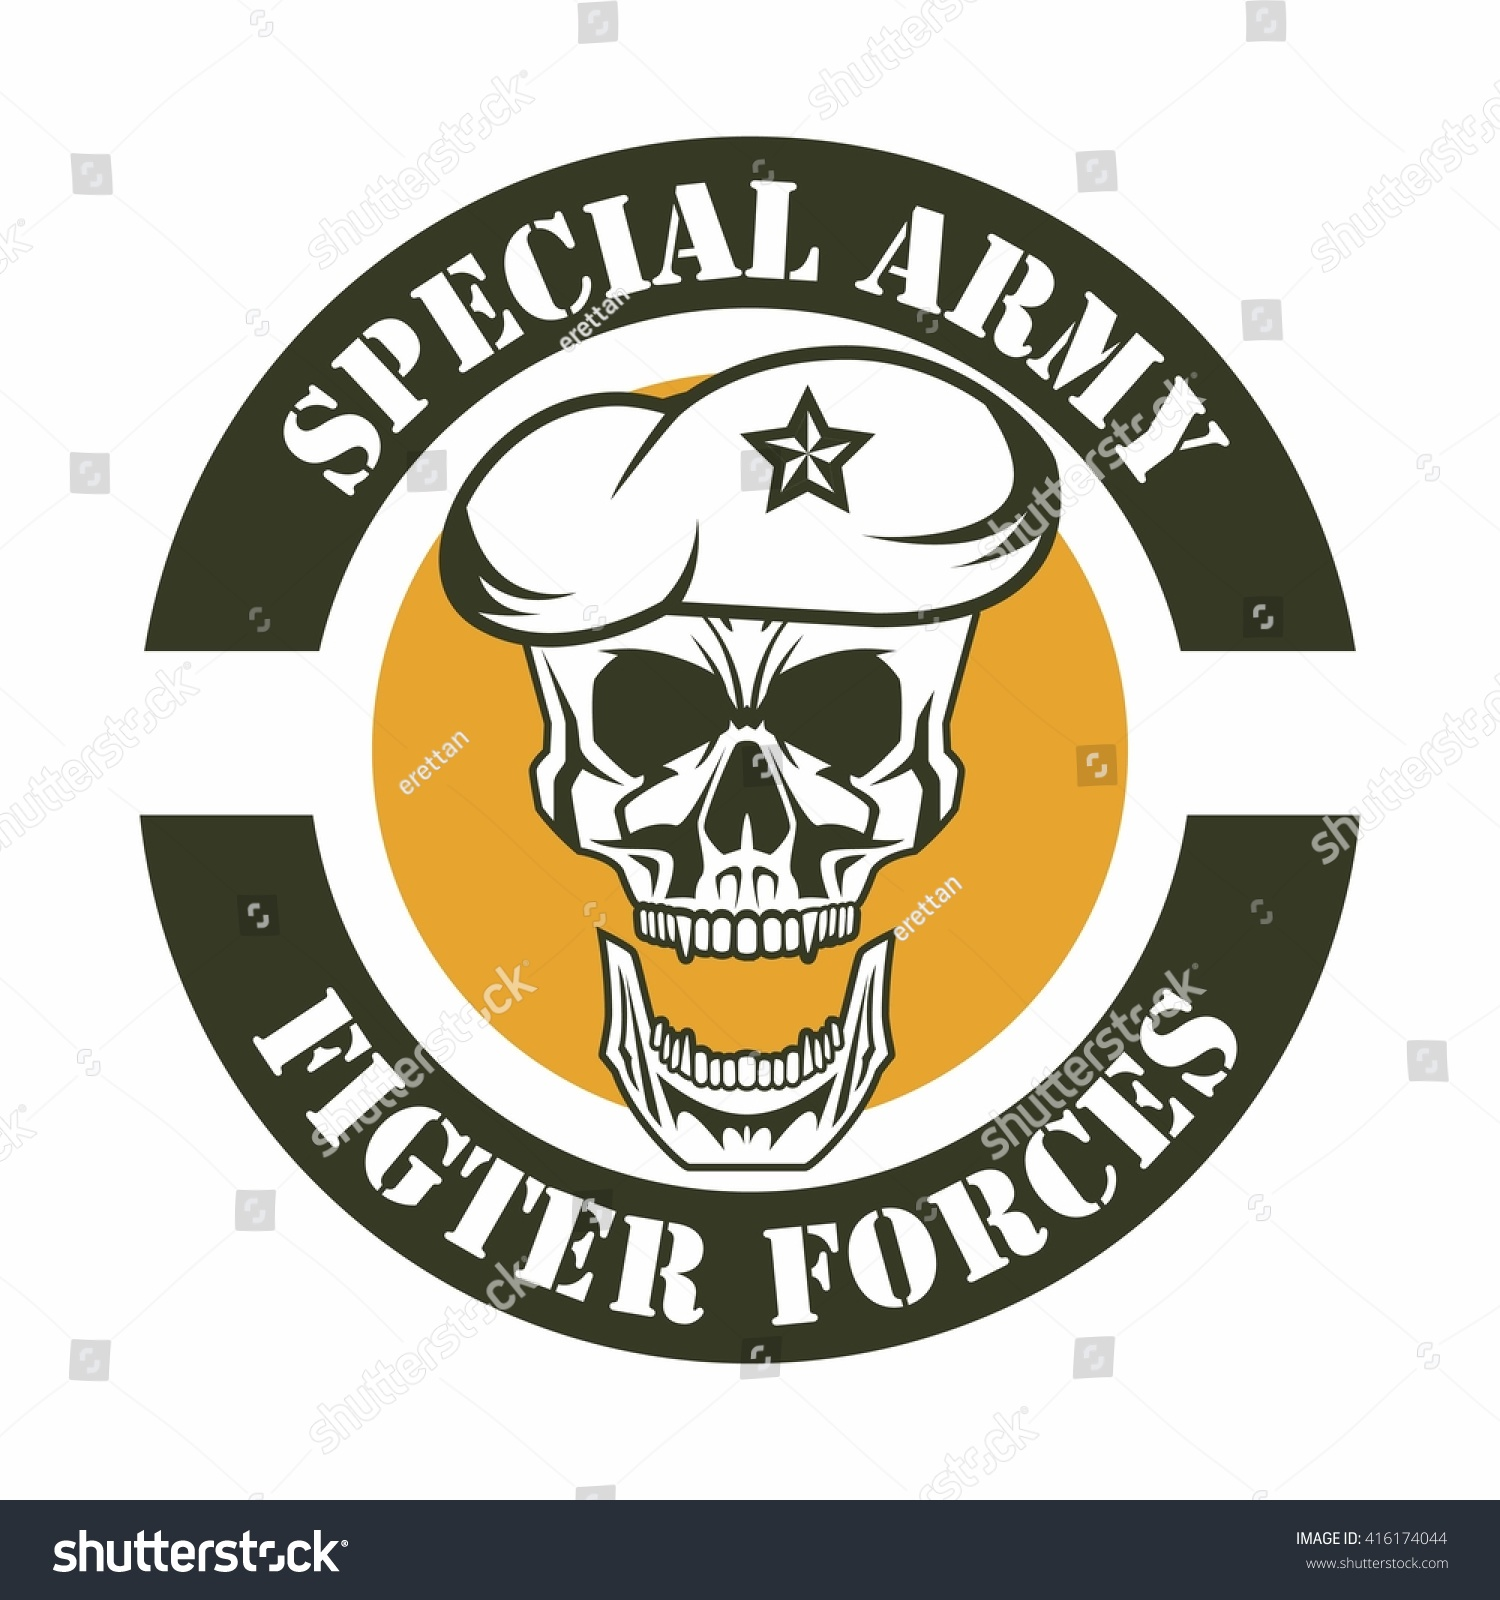 army logo template stock vector 416174044 shutterstock. Black Bedroom Furniture Sets. Home Design Ideas